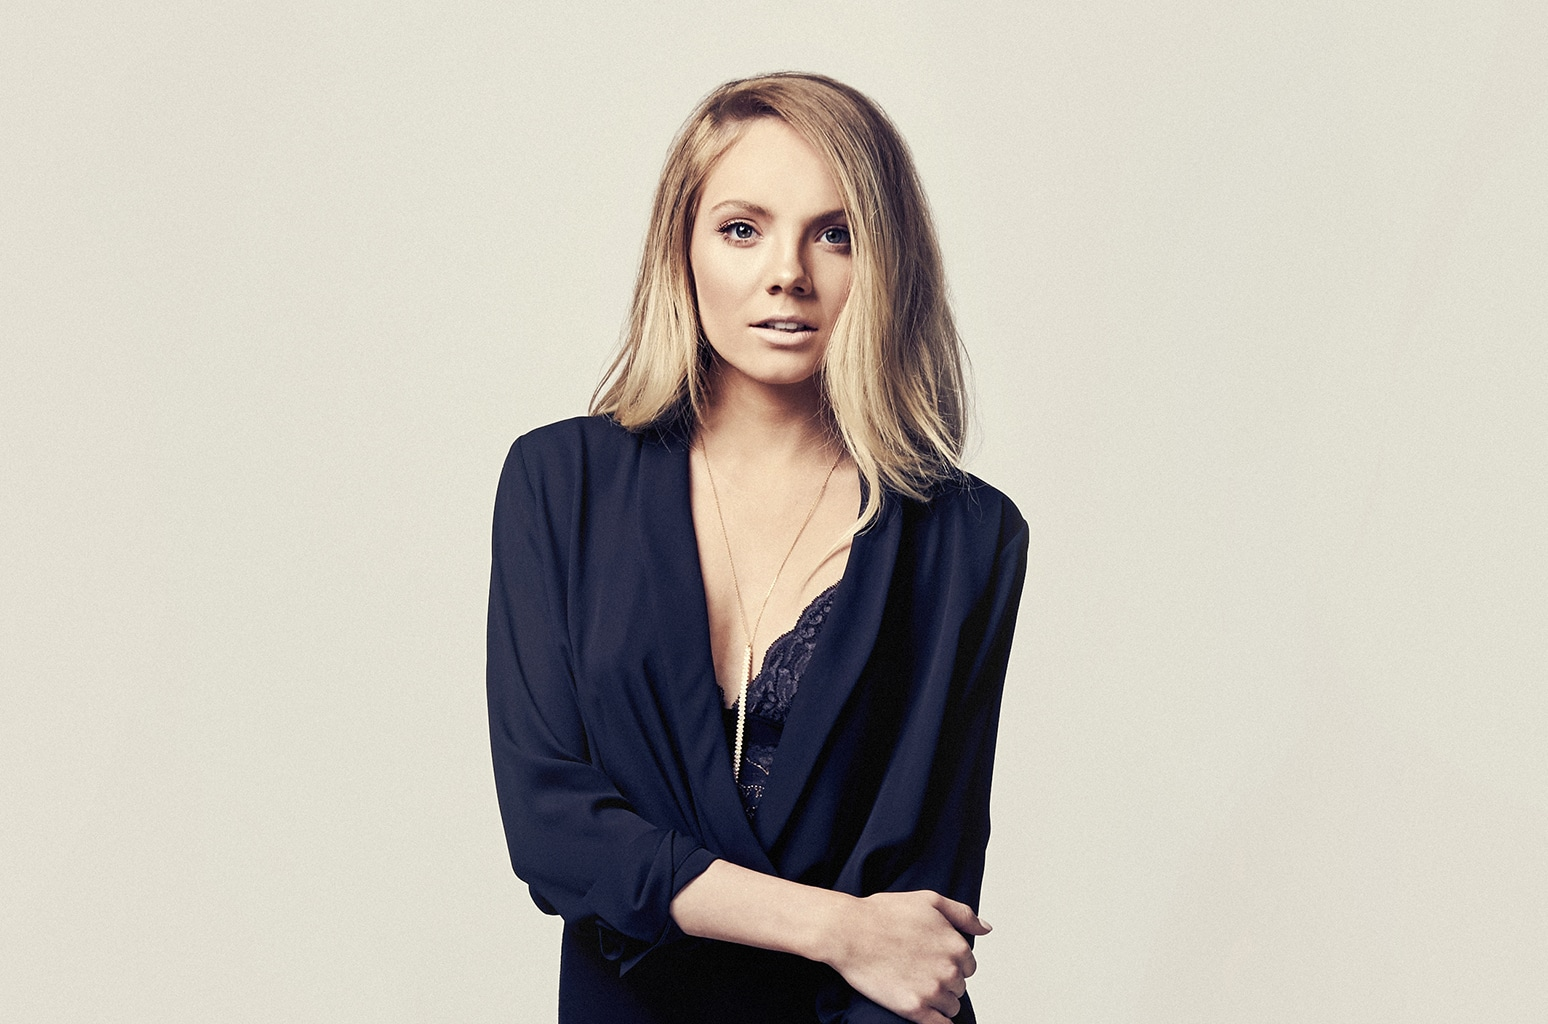 Interview: Danielle Bradbery Talks Choosing Writers and Producers for New Album